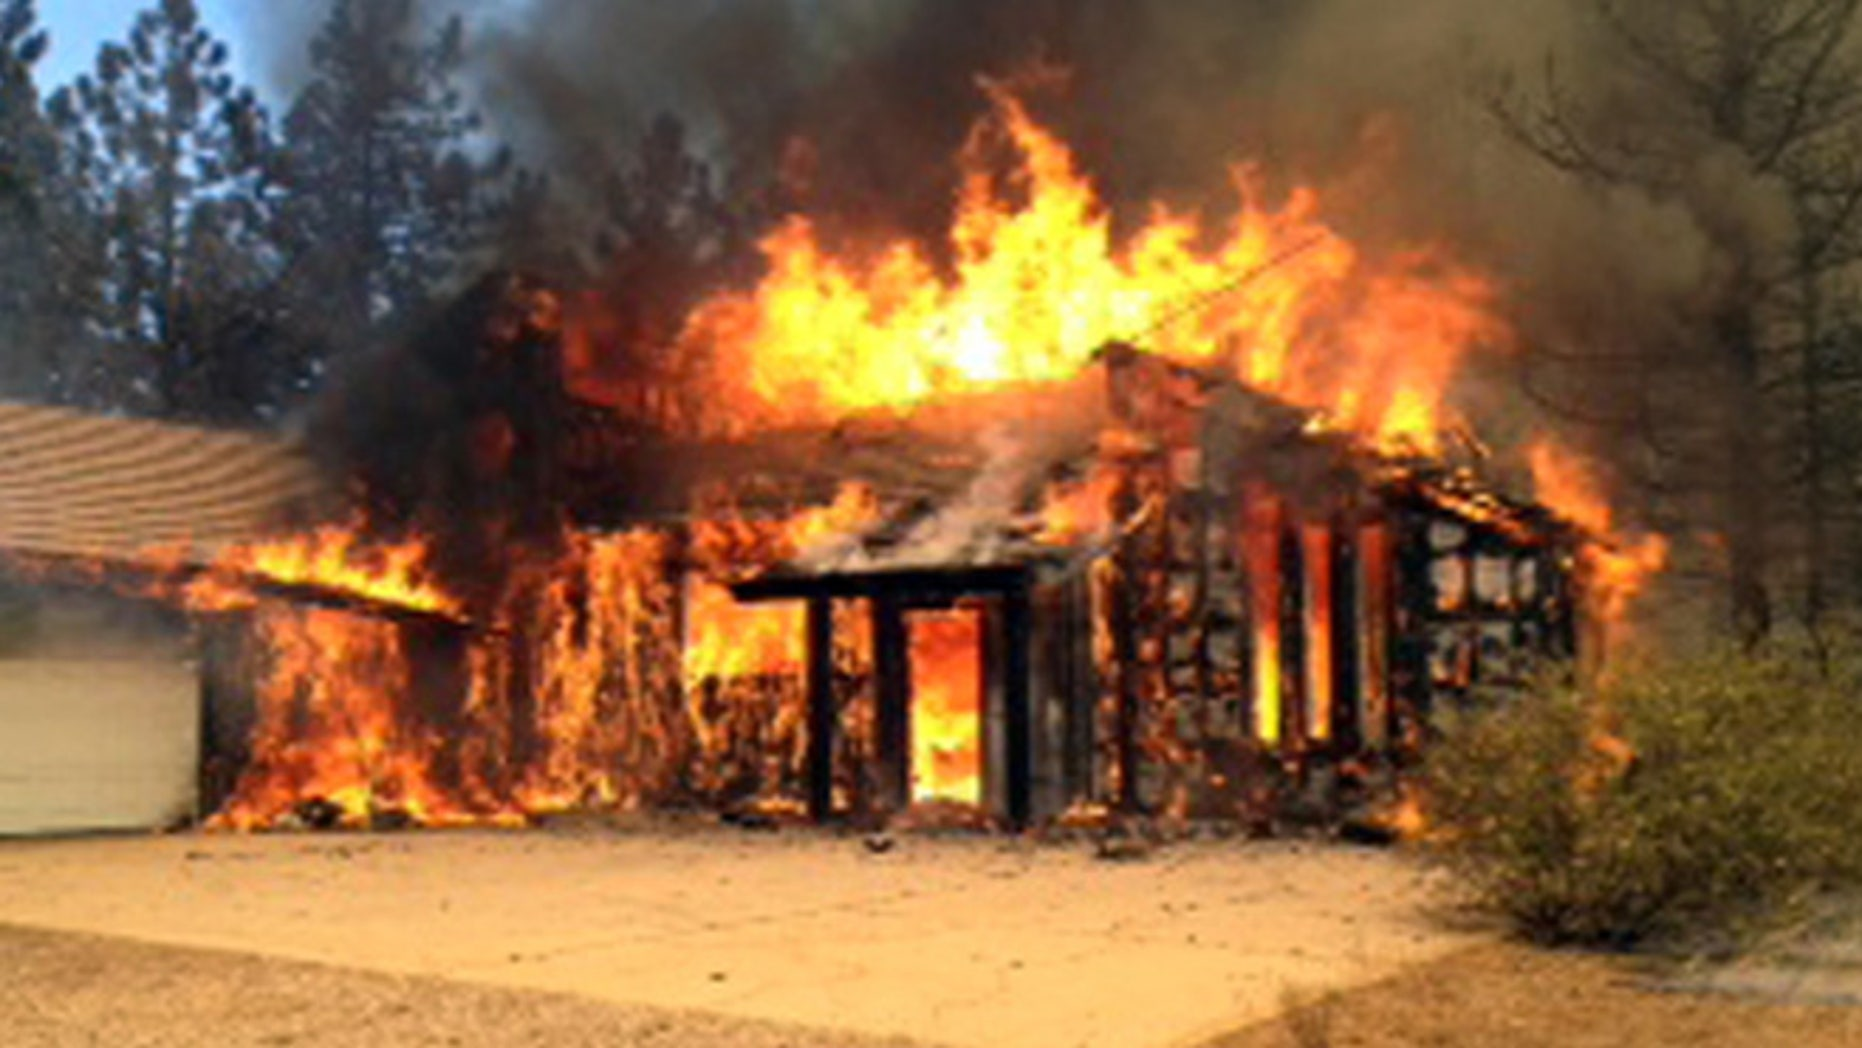 July 3, 2014: In this still frame from video provided by KNSD-TV, a home is fully involved in flames as crews scrambled to corral a wildfire that burned two homes near the San Diego County mountain town of Julian in Southern California.